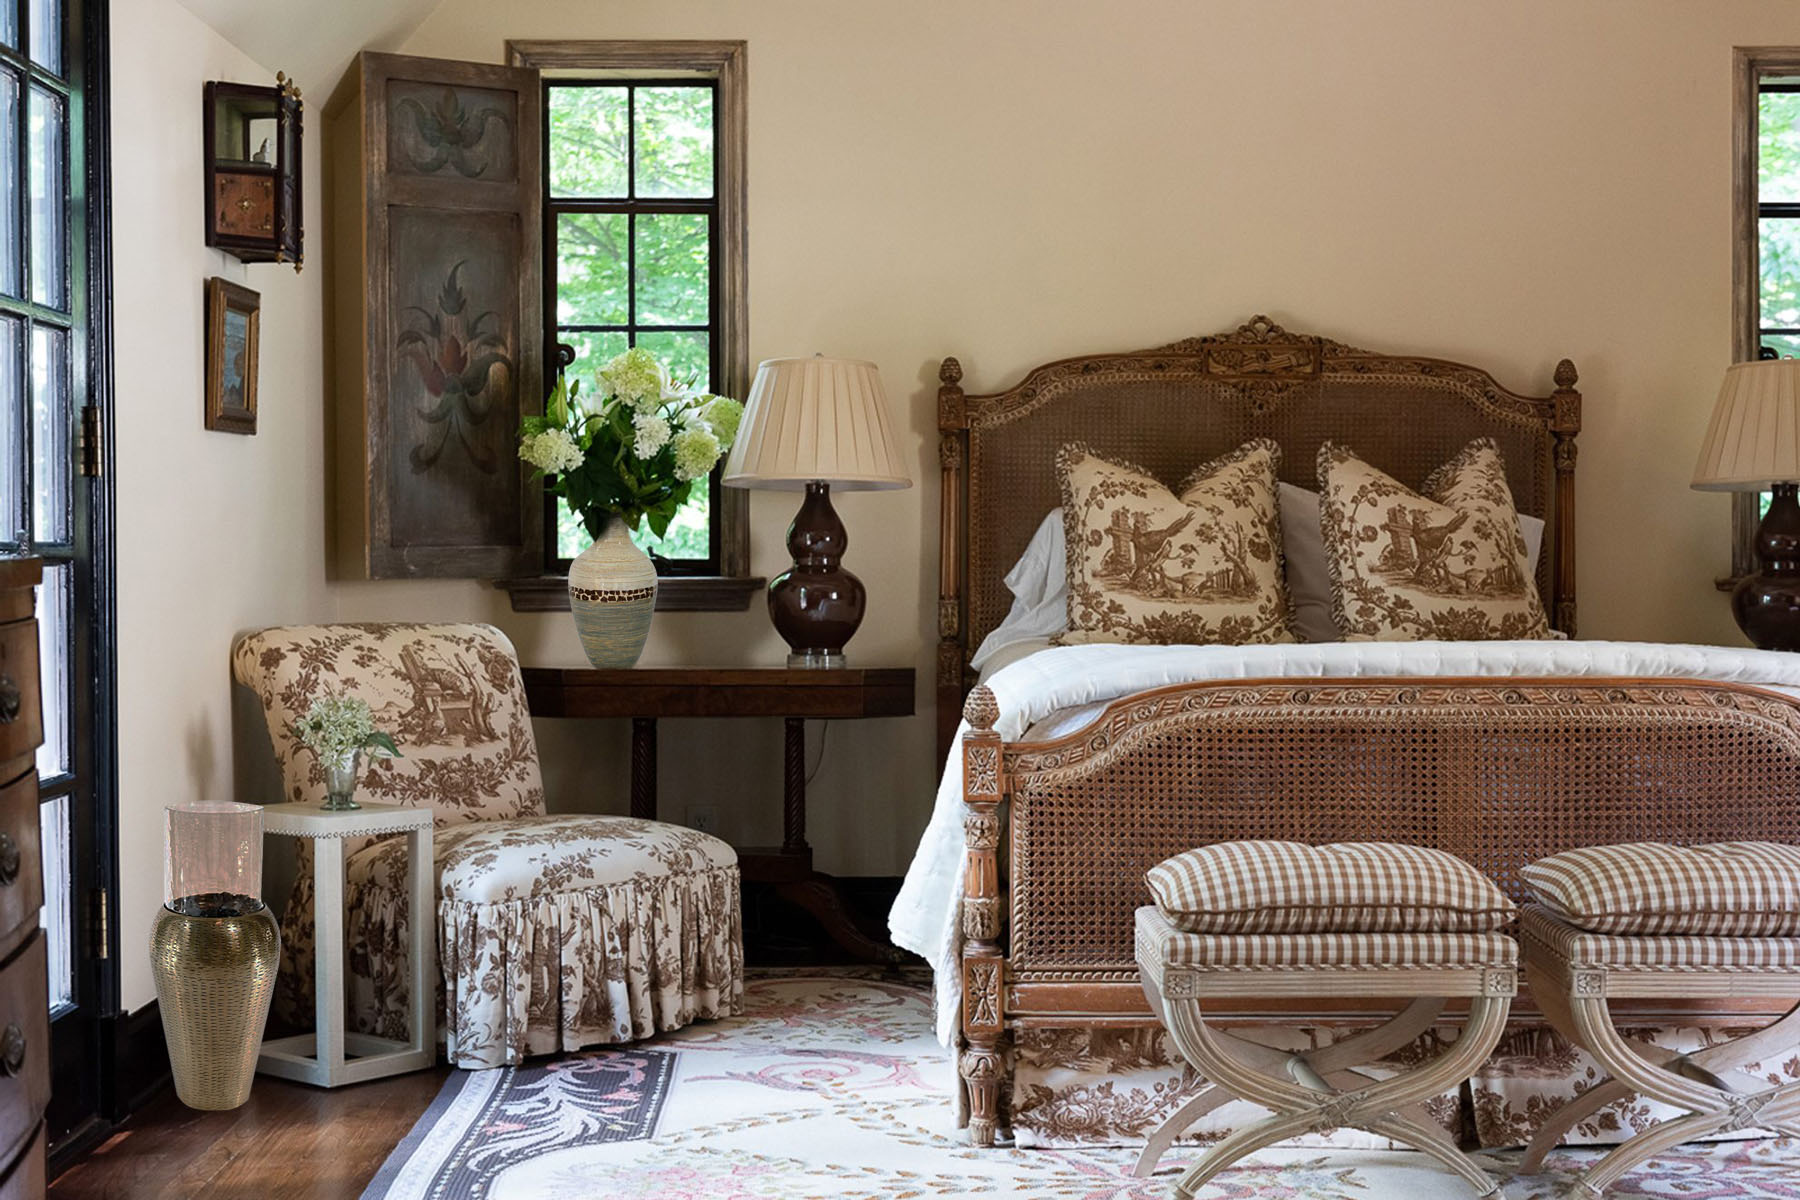 bohemian style bedroom with a brown, tan and cream color scheme. Wicker. Prints. Antique.